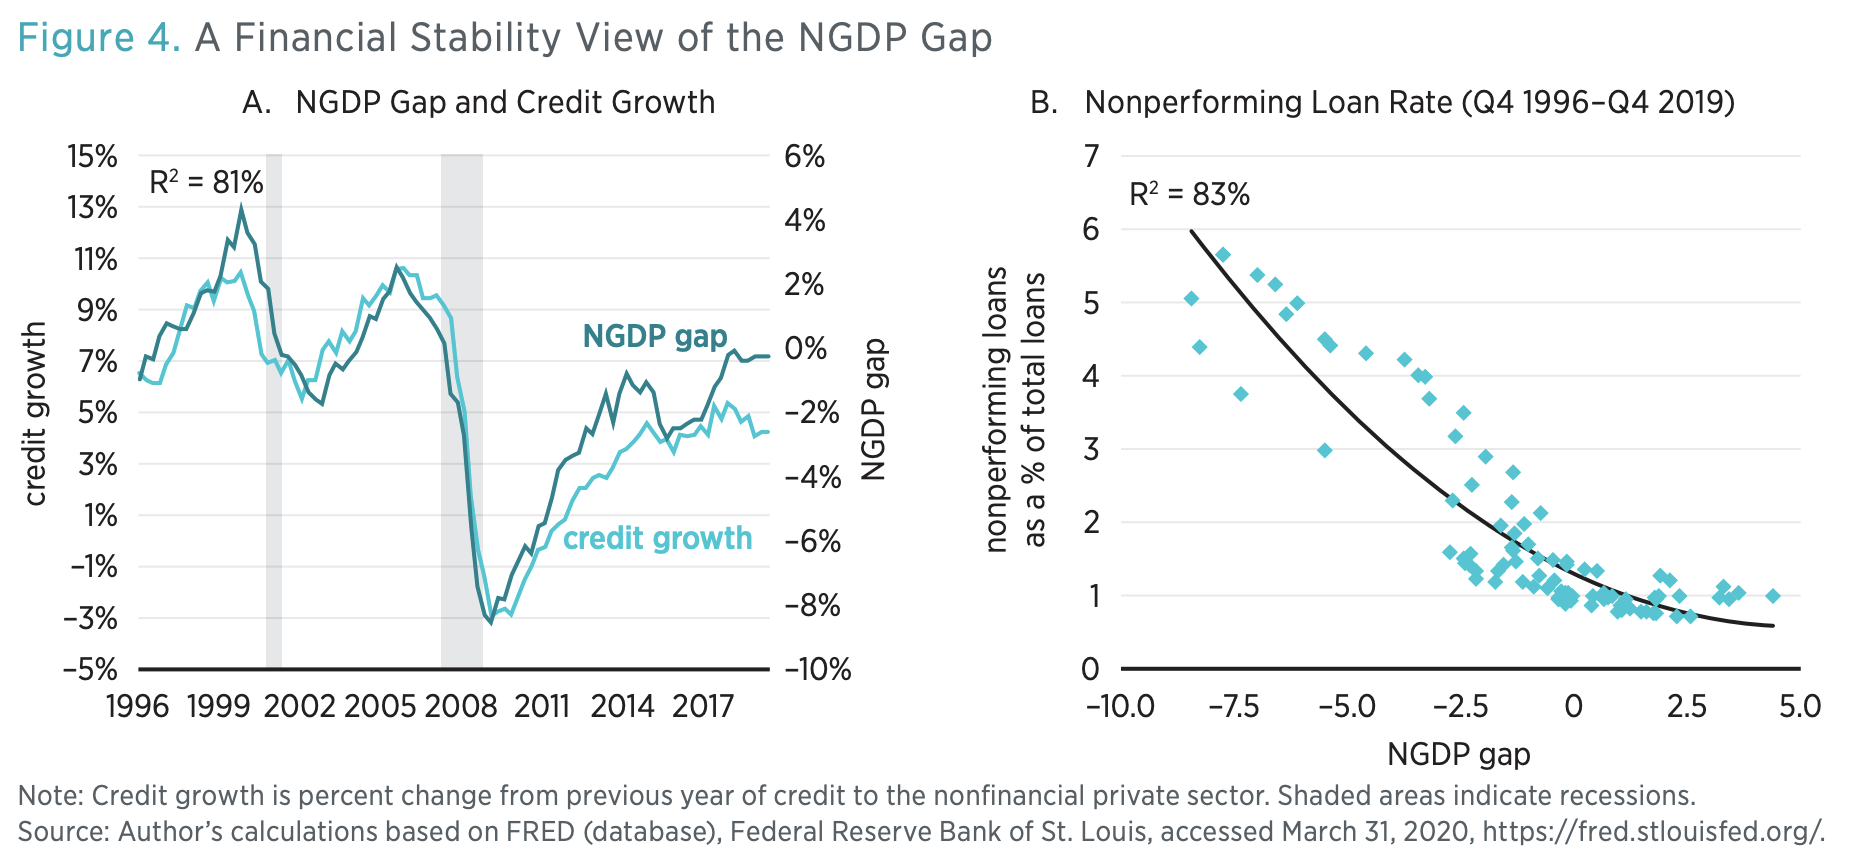 Figure 4. A Financial Stability View of the NGDP Gap